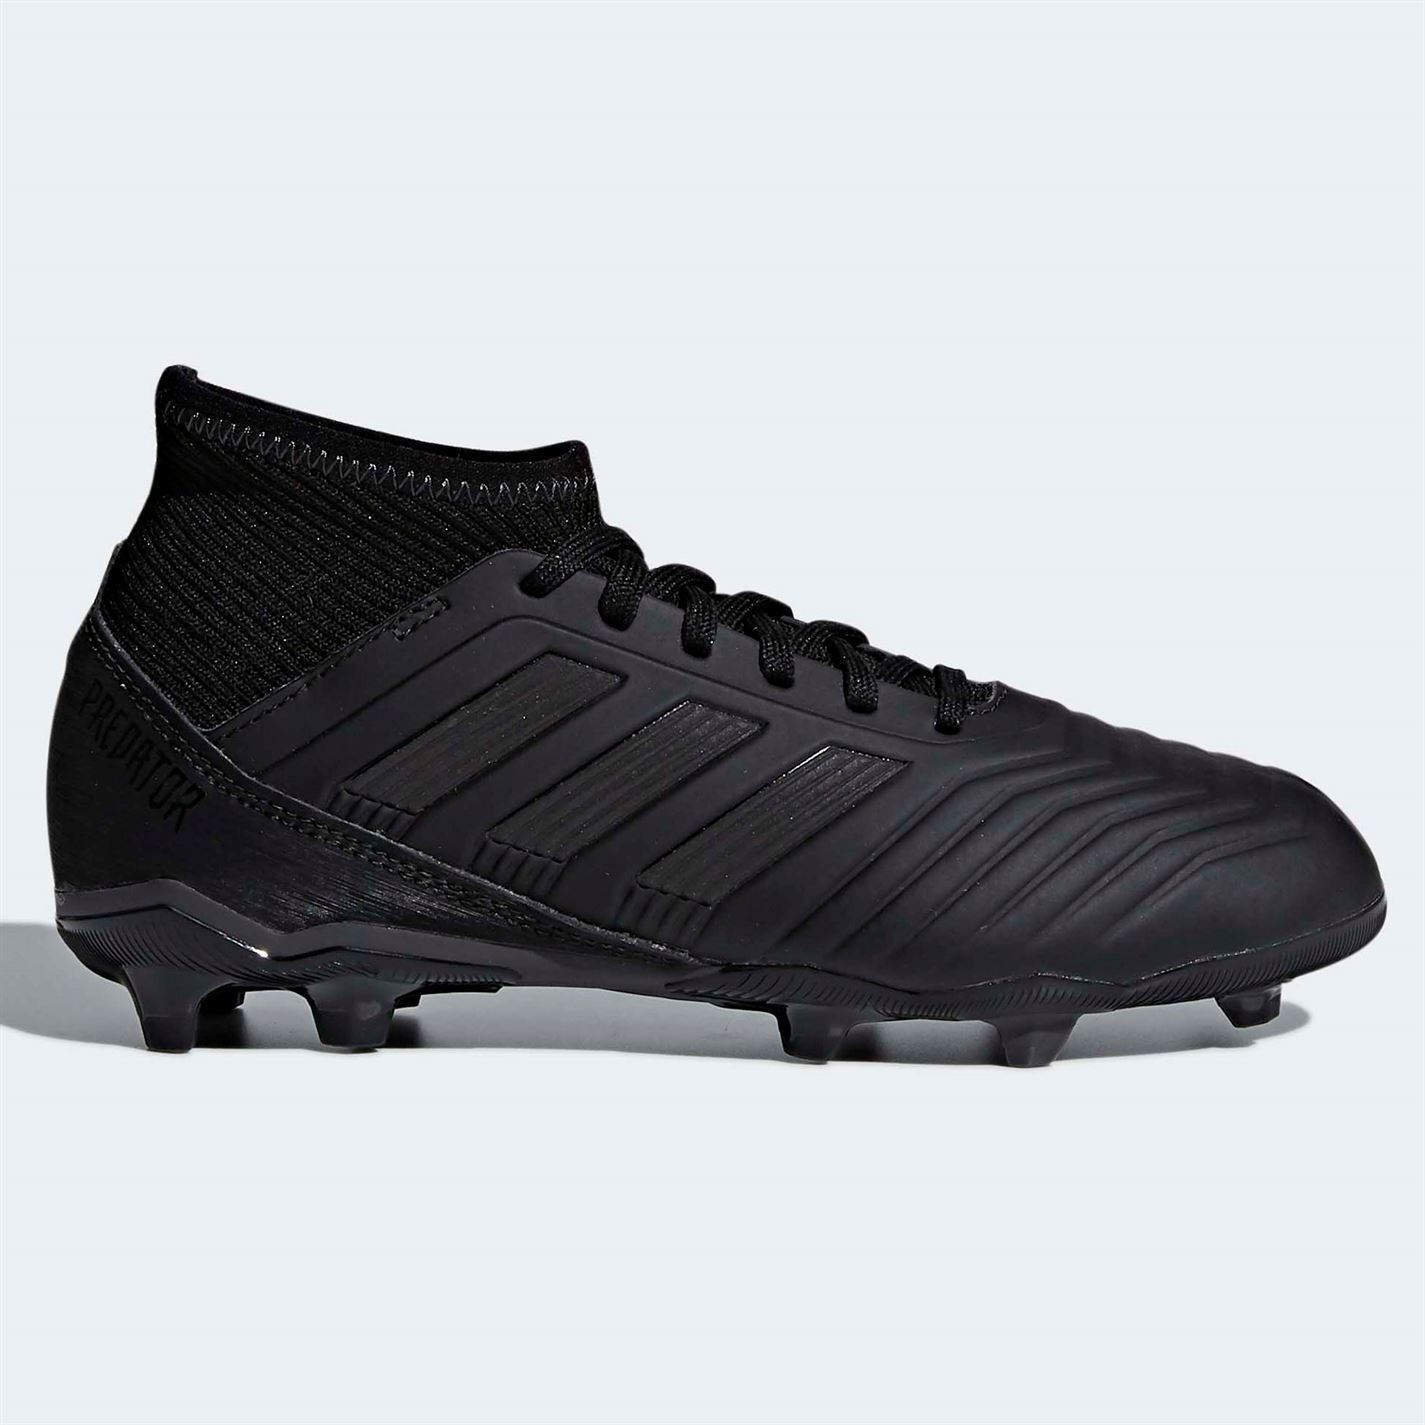 new arrival 2fa75 2c49e ... adidas Predator 18.3 FG Firm Ground Football Boots Childs Black Soccer  Cleats ...